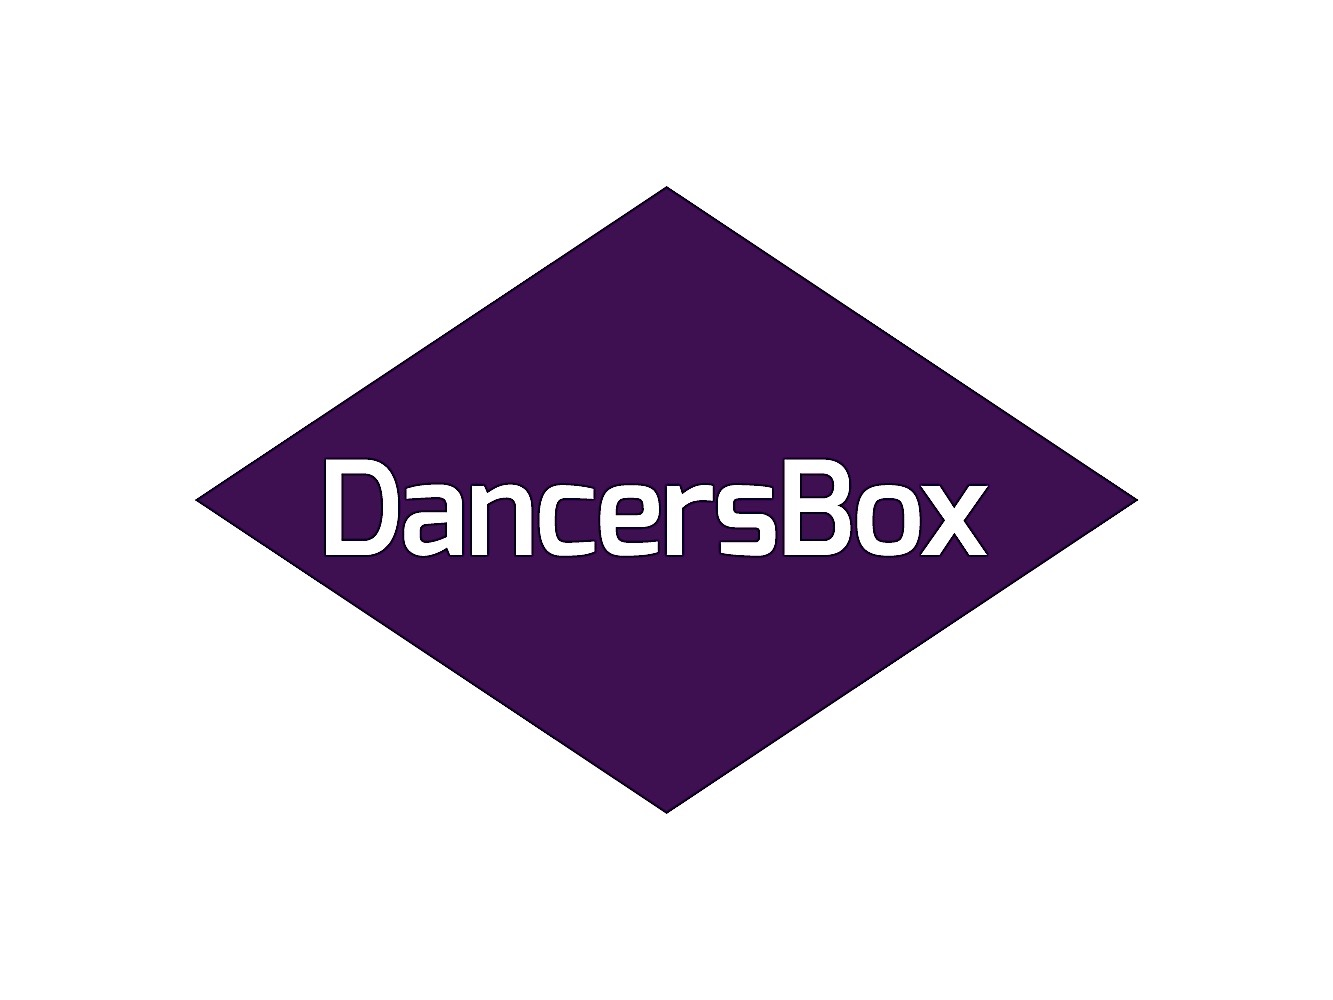 Dancers Box Logo and branding by Nugget Design